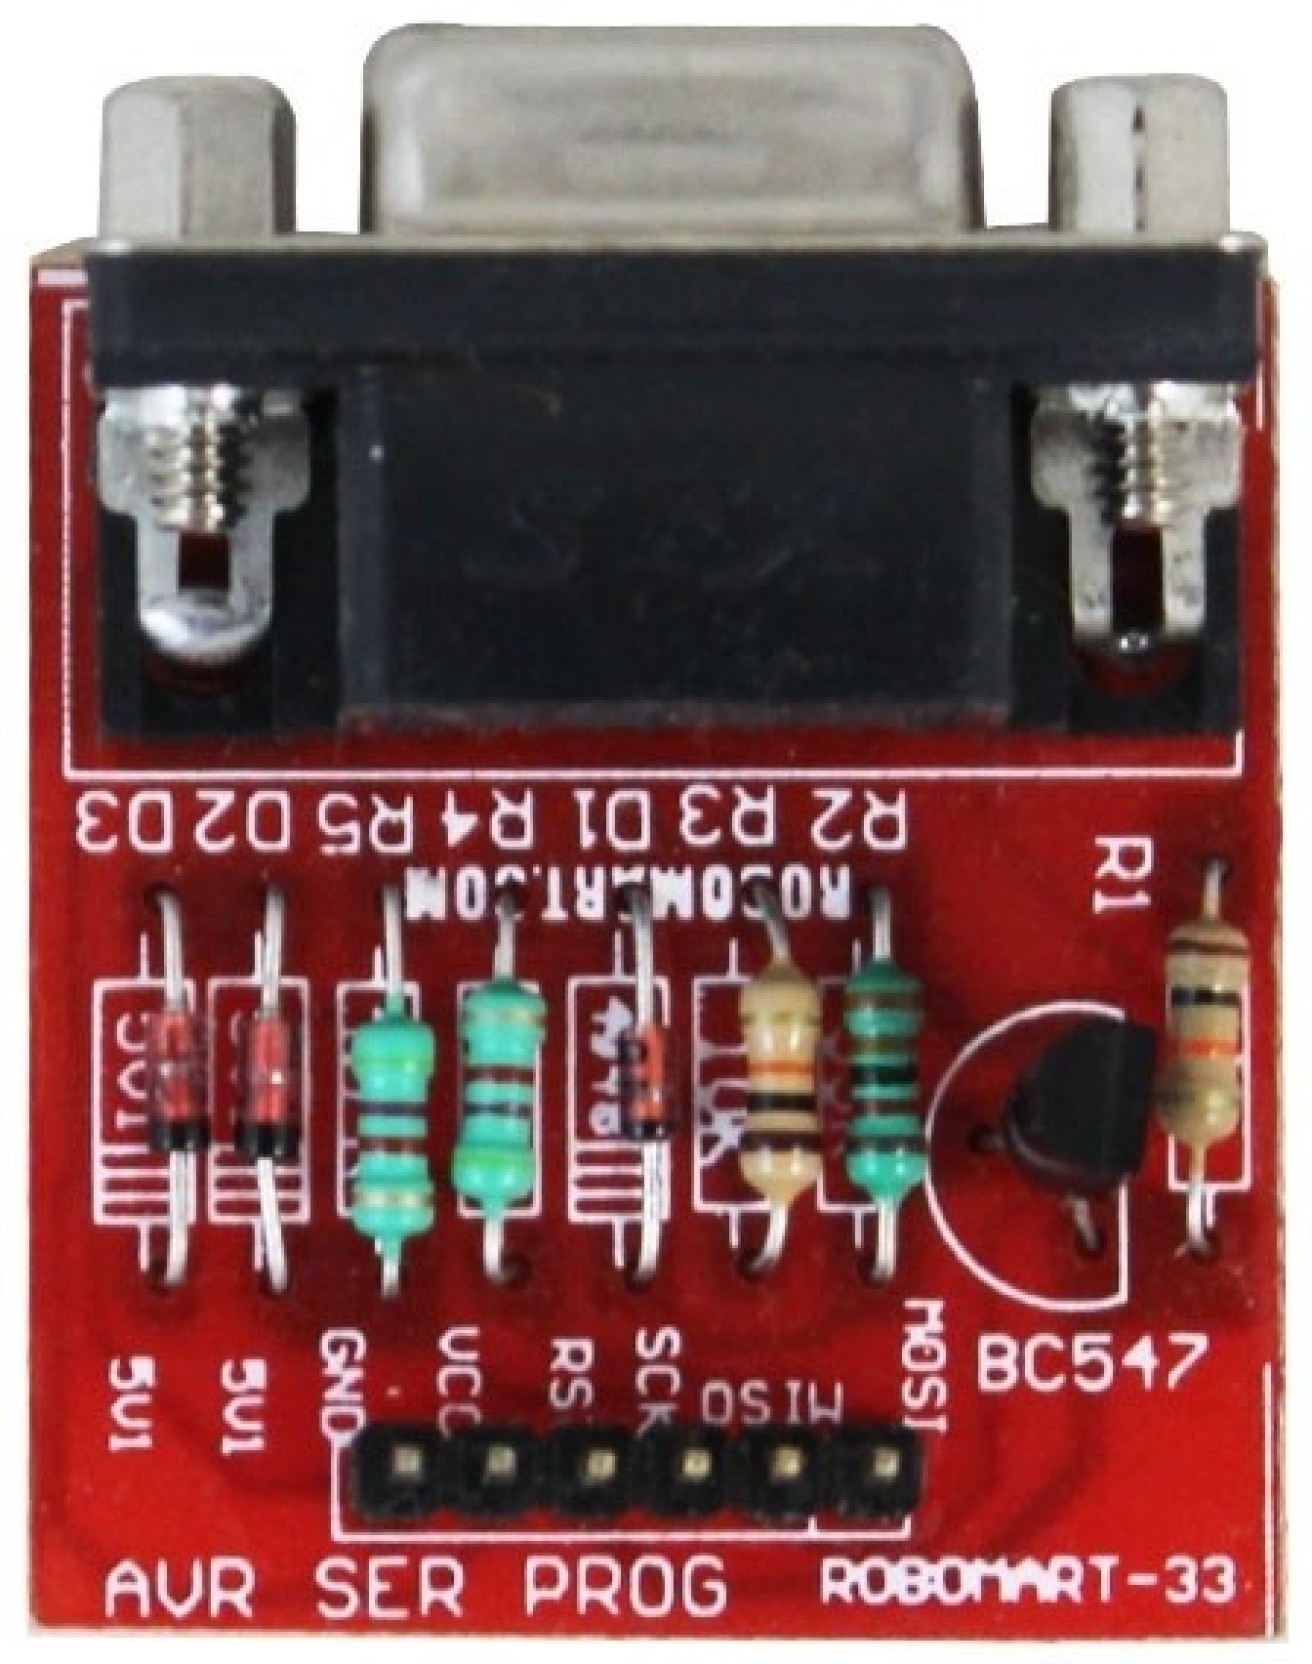 Robomart Avr Serial Programmer Price In India Buy Circuit Boards For Isp Printed Share